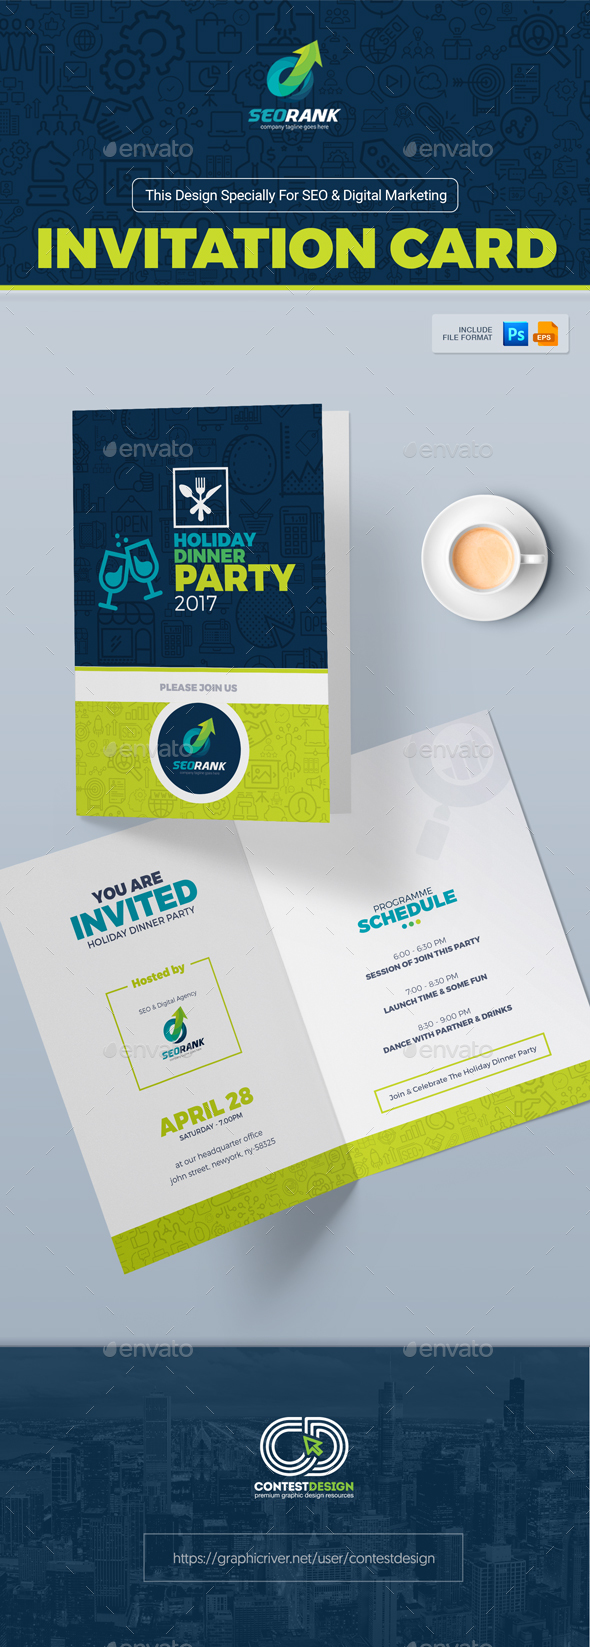 Invitation Templates from GraphicRiver – Party Invitation Card Design